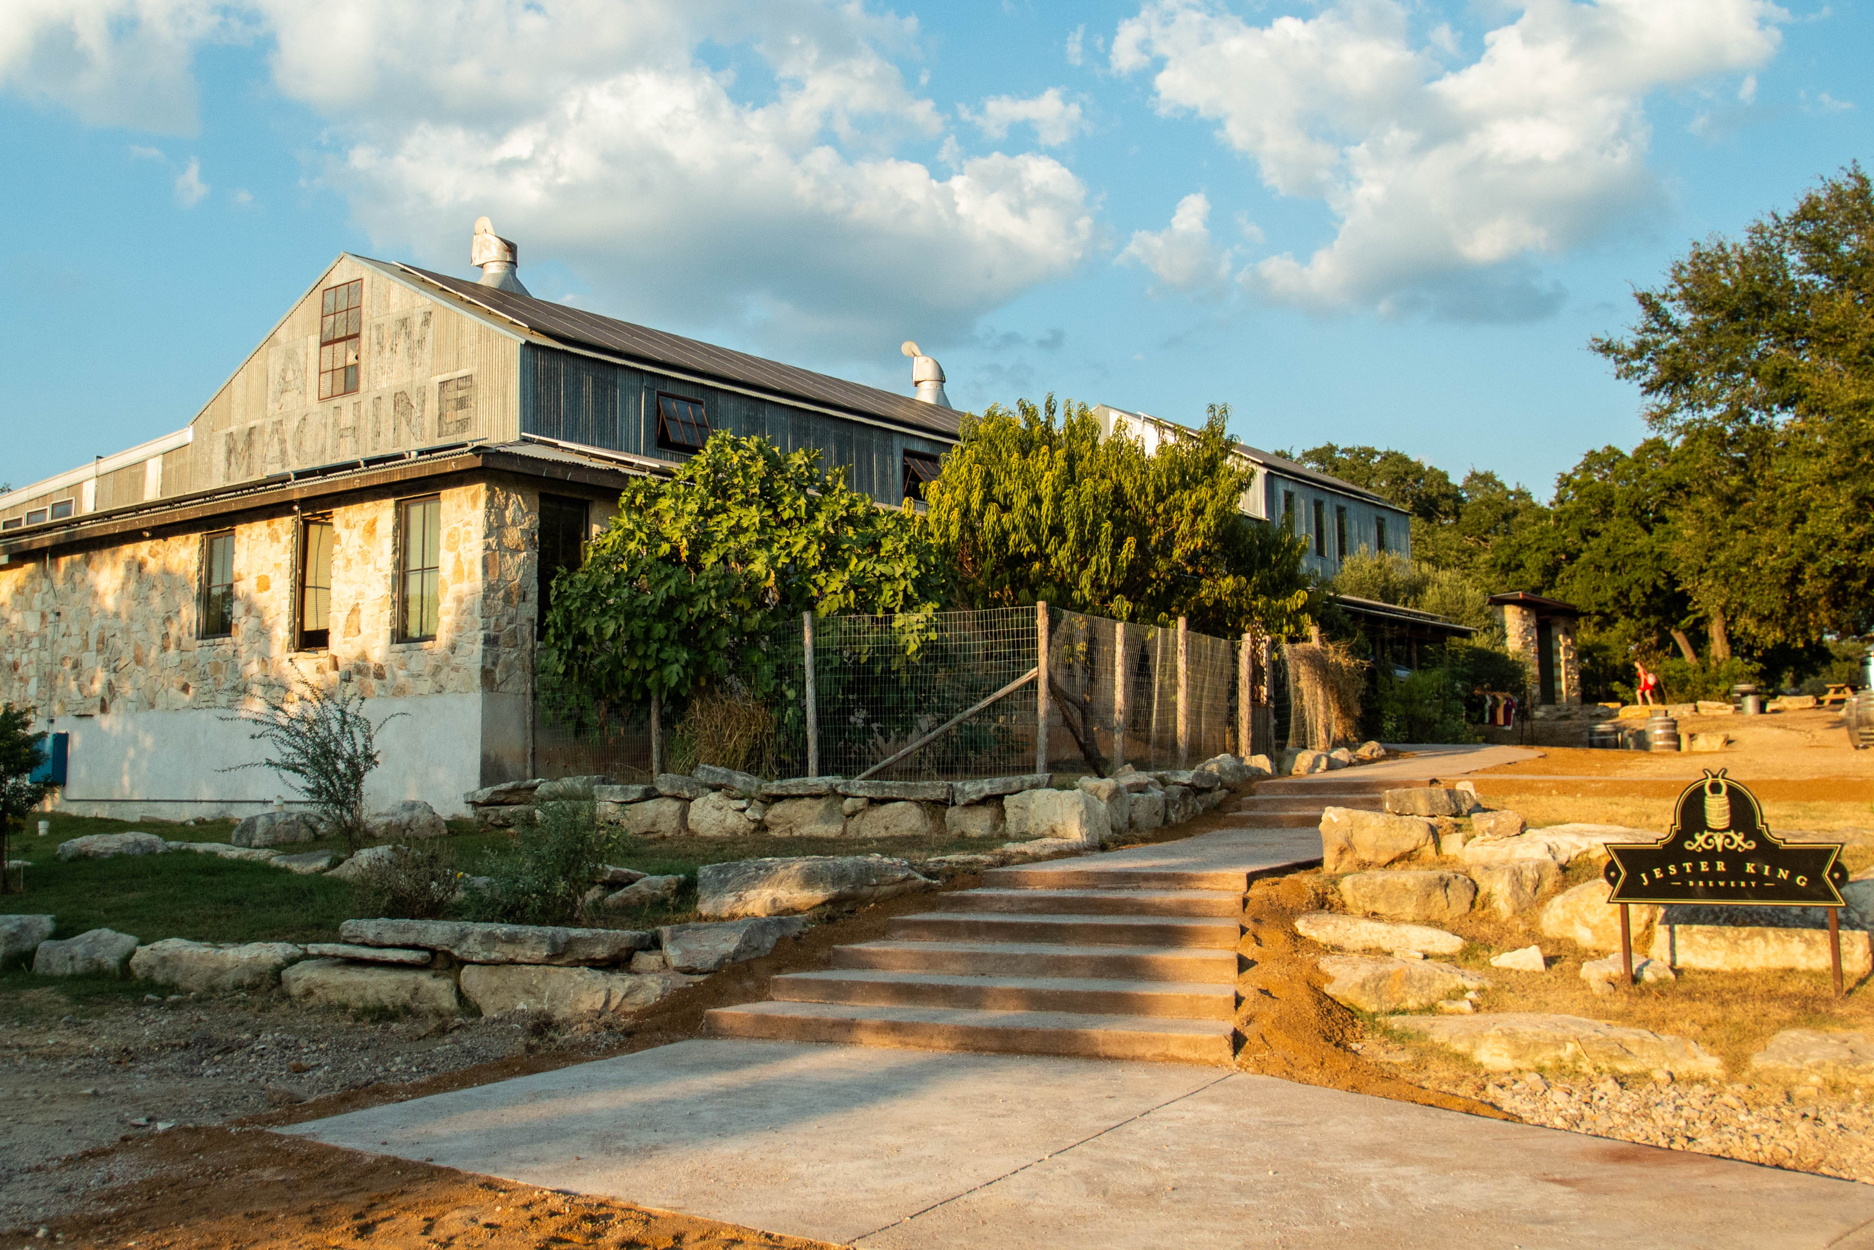 Brewing Turns Into Social Distancing Park | Jester King Austin